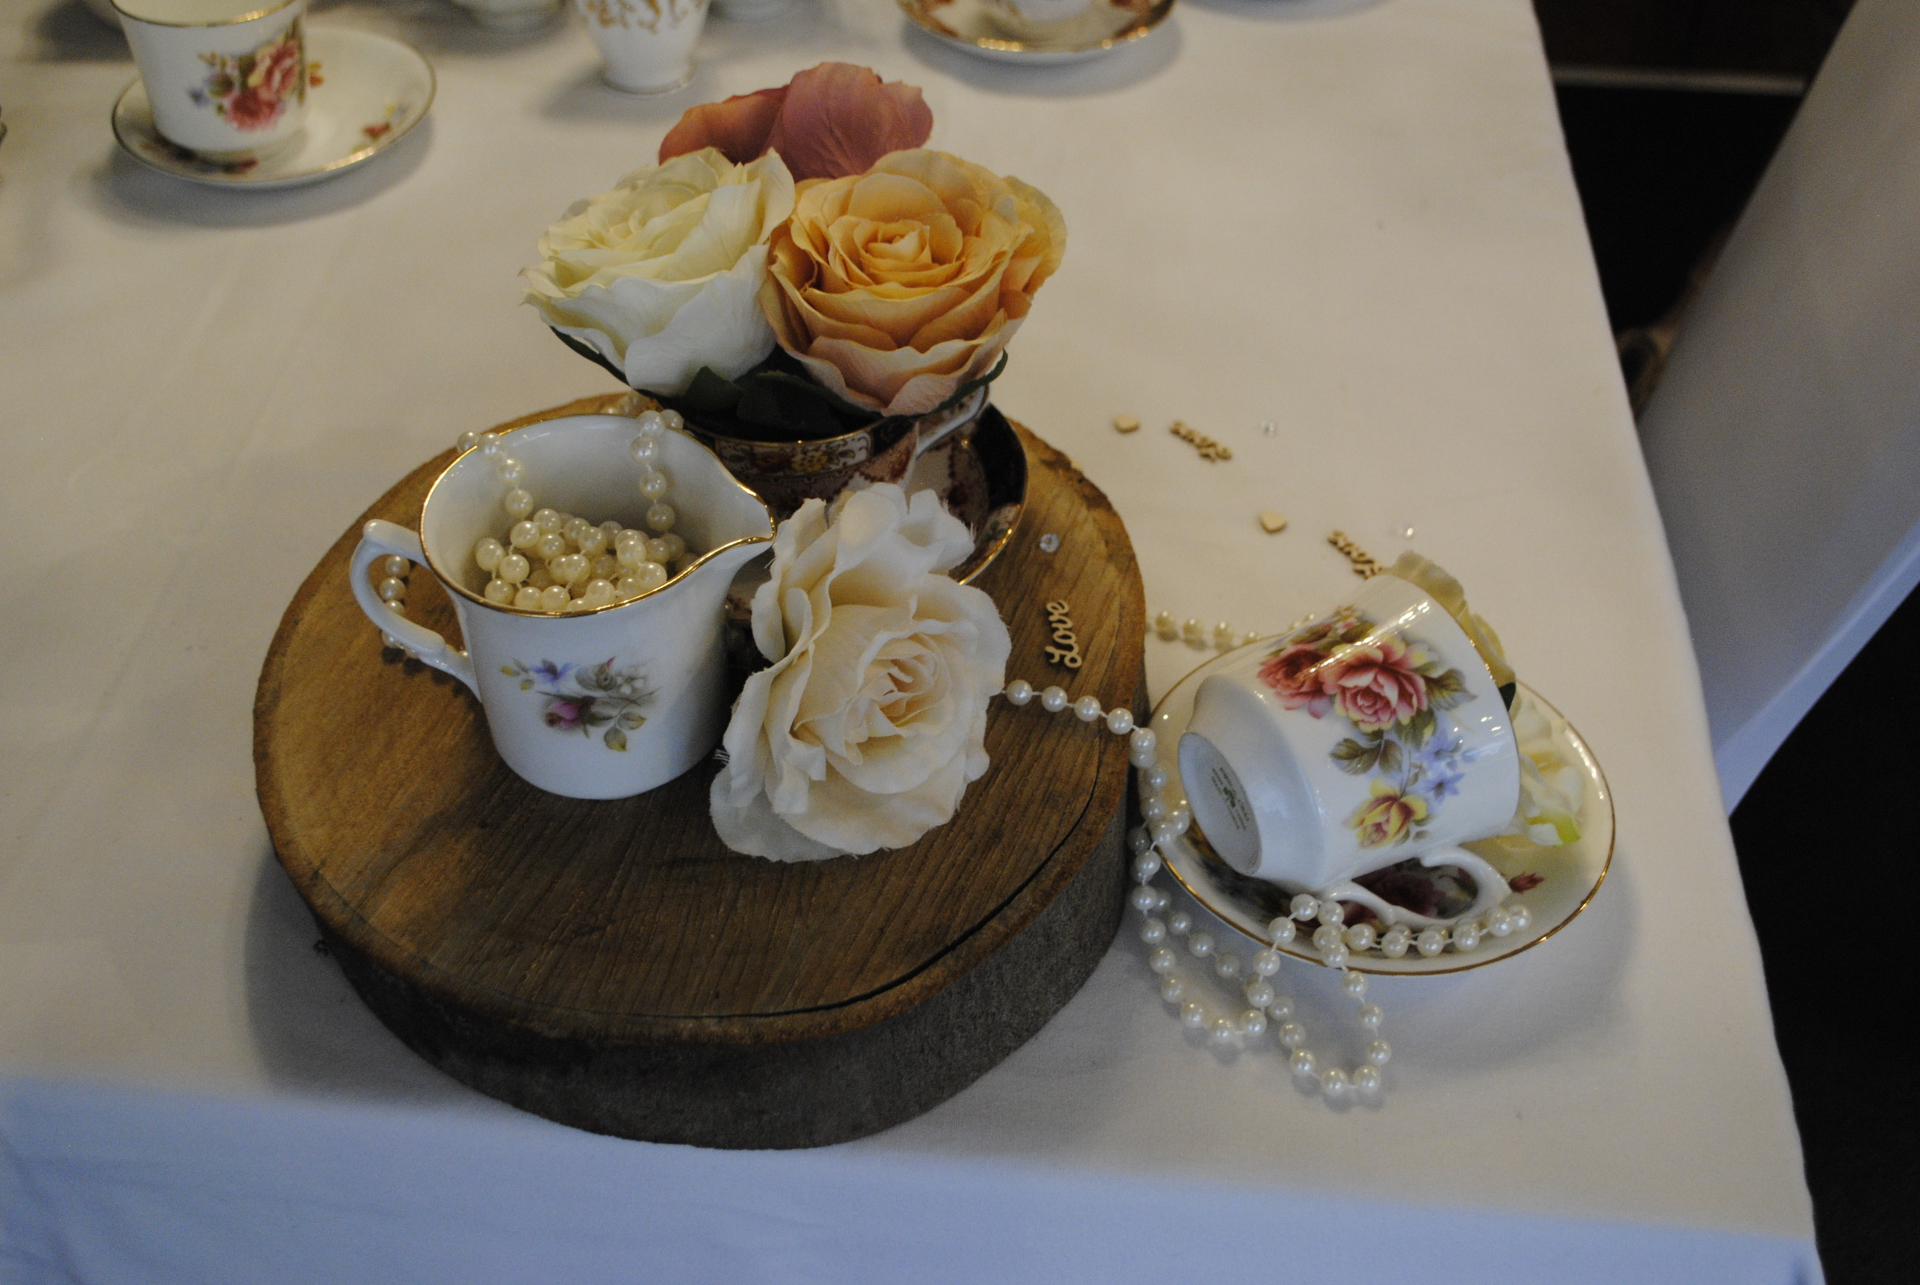 Vintage teacups with artificial roses draped pearls on a log slice